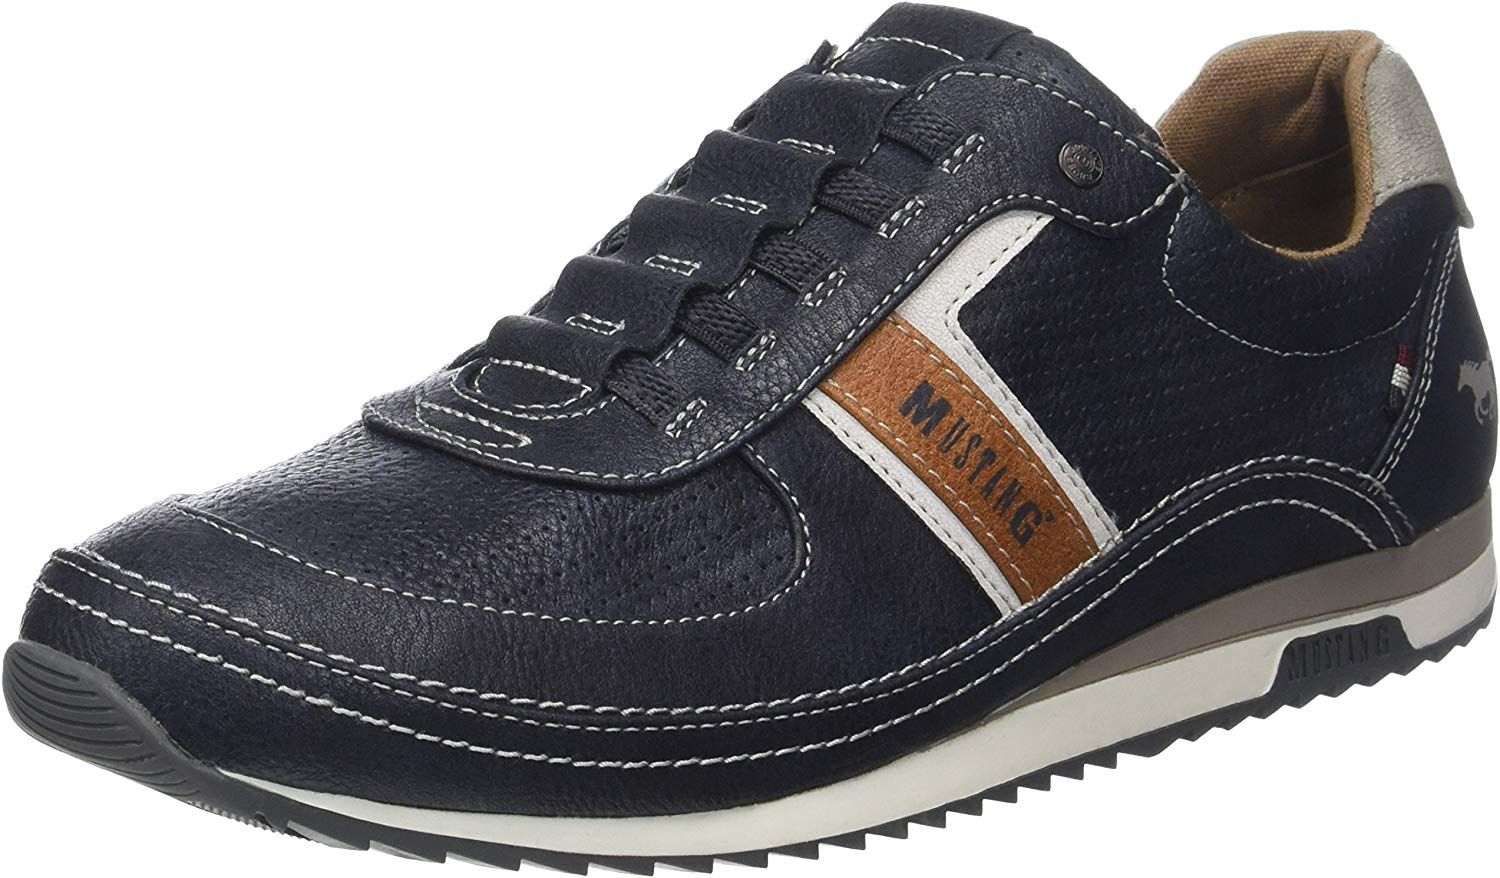 Mustang 4125 402 820, Baskets Enfiler Homme, Bleu (Navy), 43